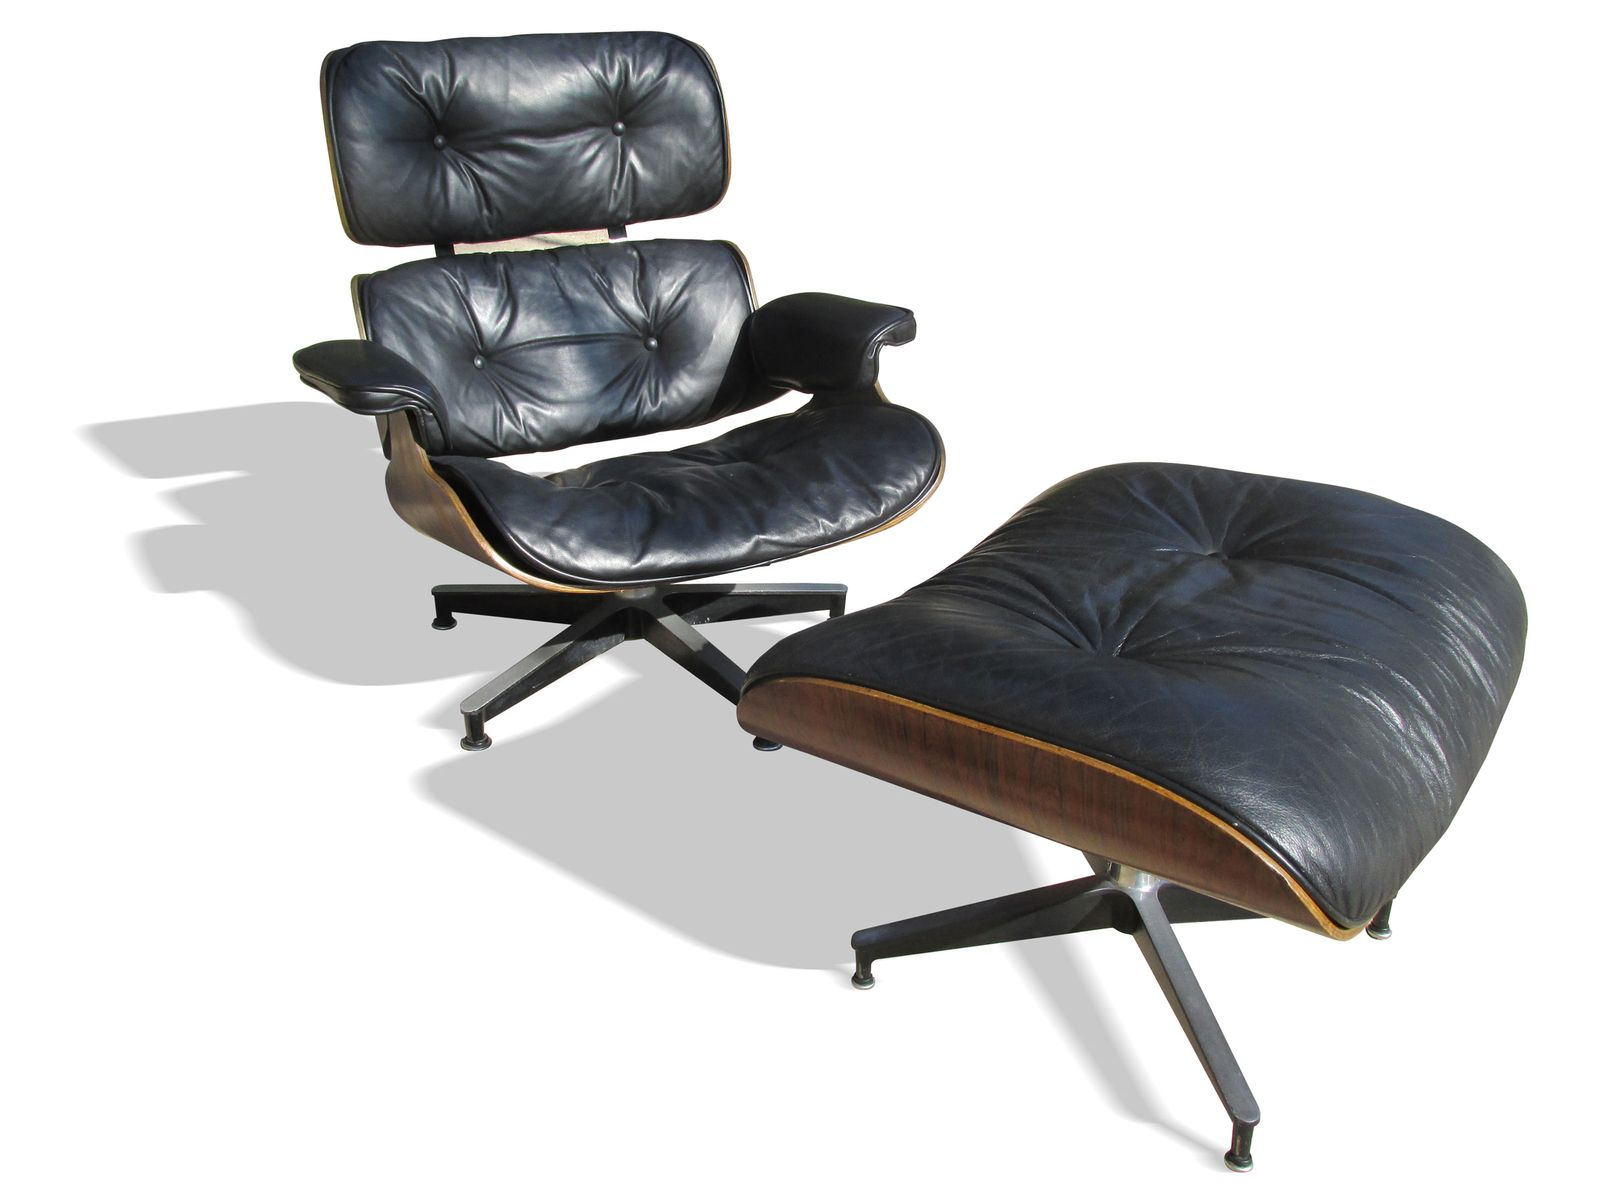 670 671 lounge chair and ottoman by charles and ray eames for herman miller 1955 for sale at pamono. Black Bedroom Furniture Sets. Home Design Ideas